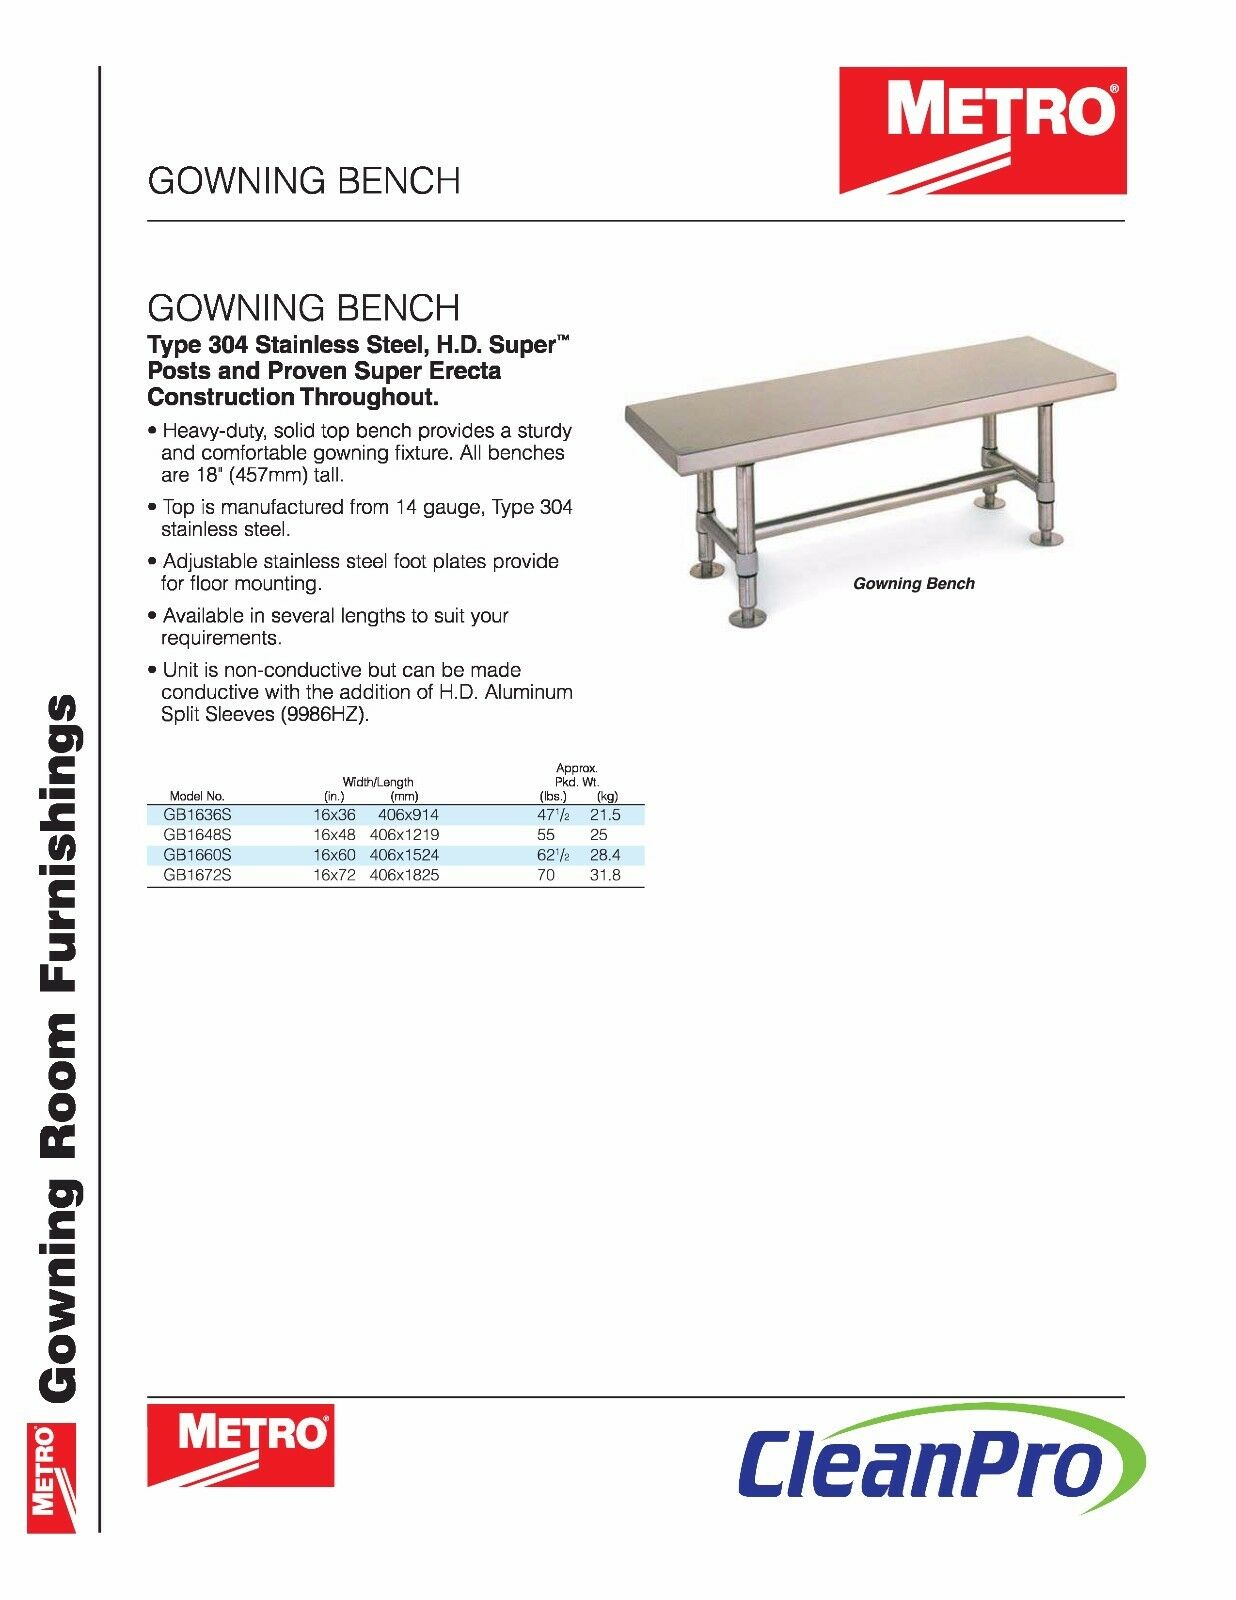 Metro GB1648S Cleanroom Gowning Bench 48 in | eBay